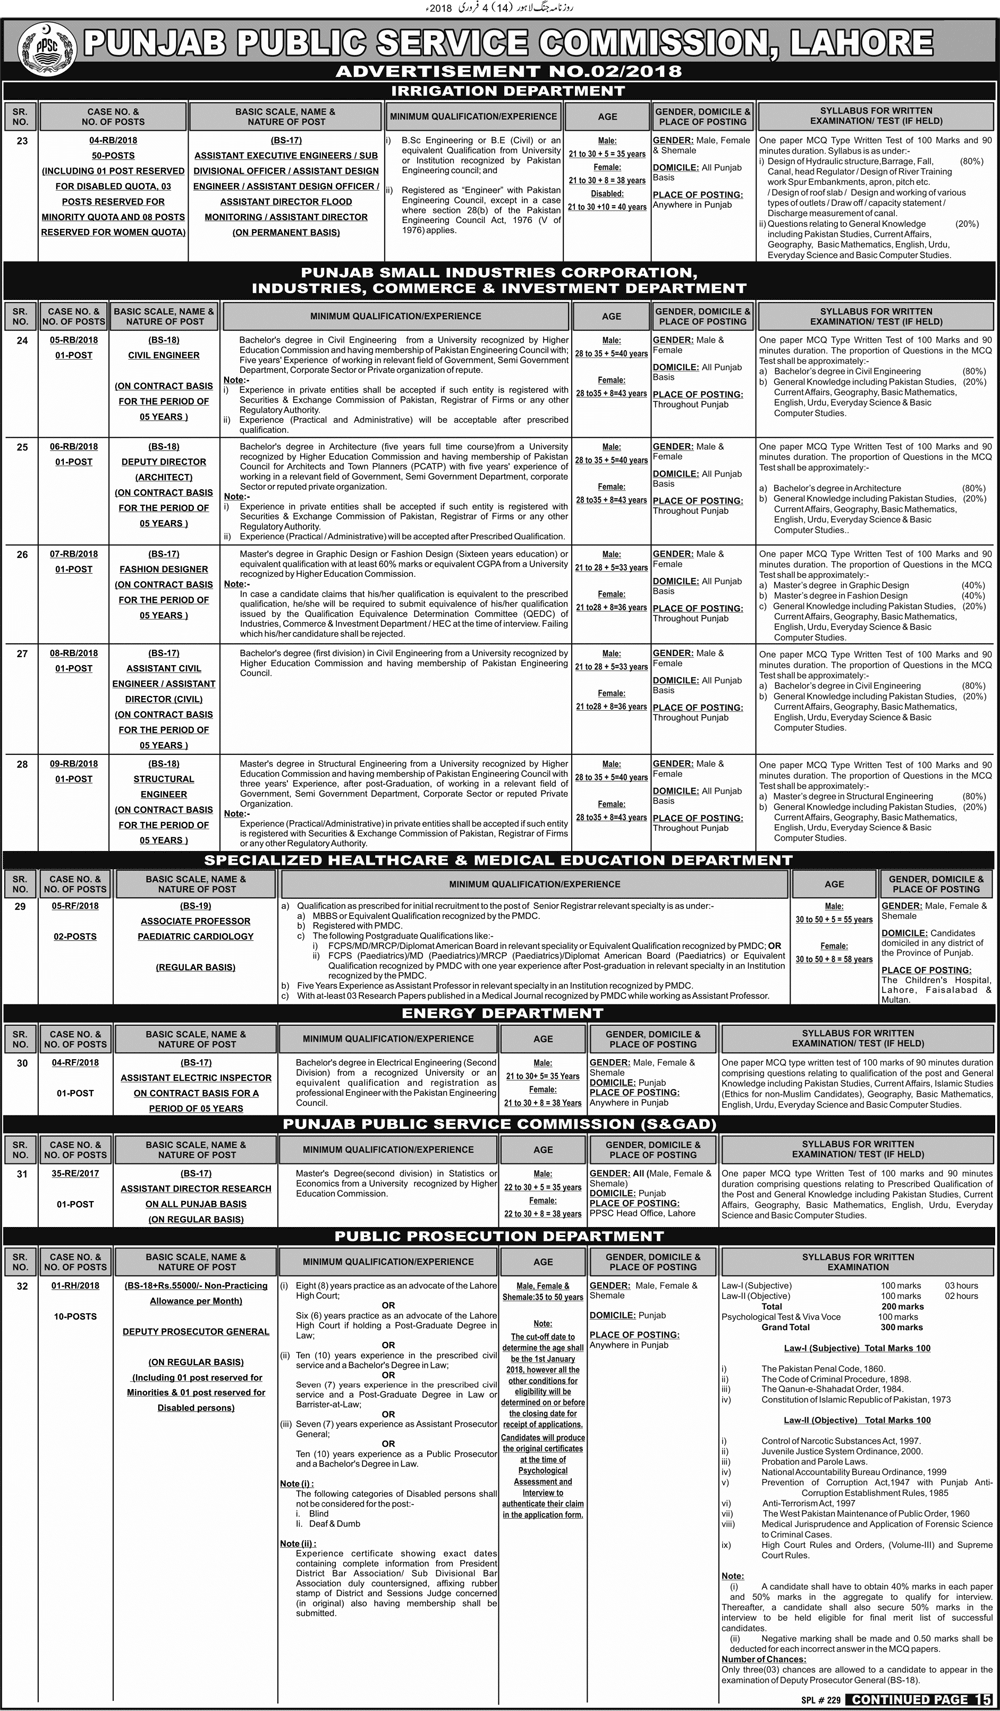 PPSC Jobs February 2018 In Punjab Advertisements Today Alert New Vacancies www.ppsc.gop.pk Different GOVT Departments